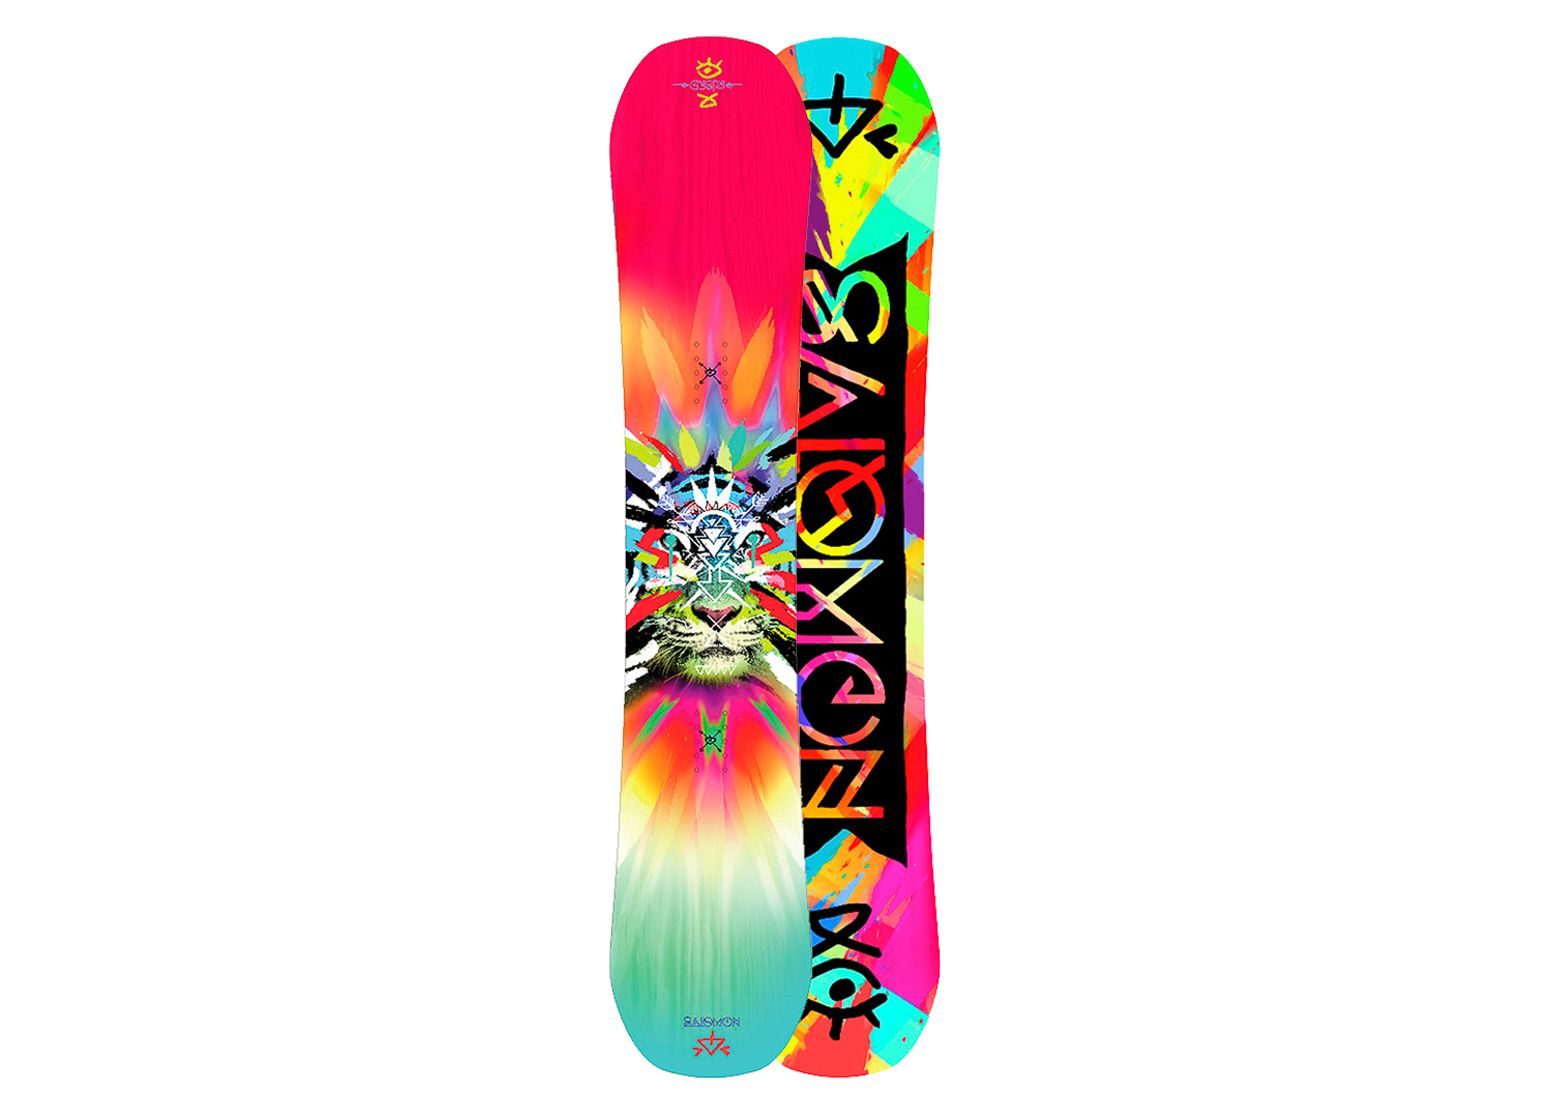 4707c699d386 Salomon Gypsy 2015-2016 Women s Snowboard Review - Whitelines Snowboarding